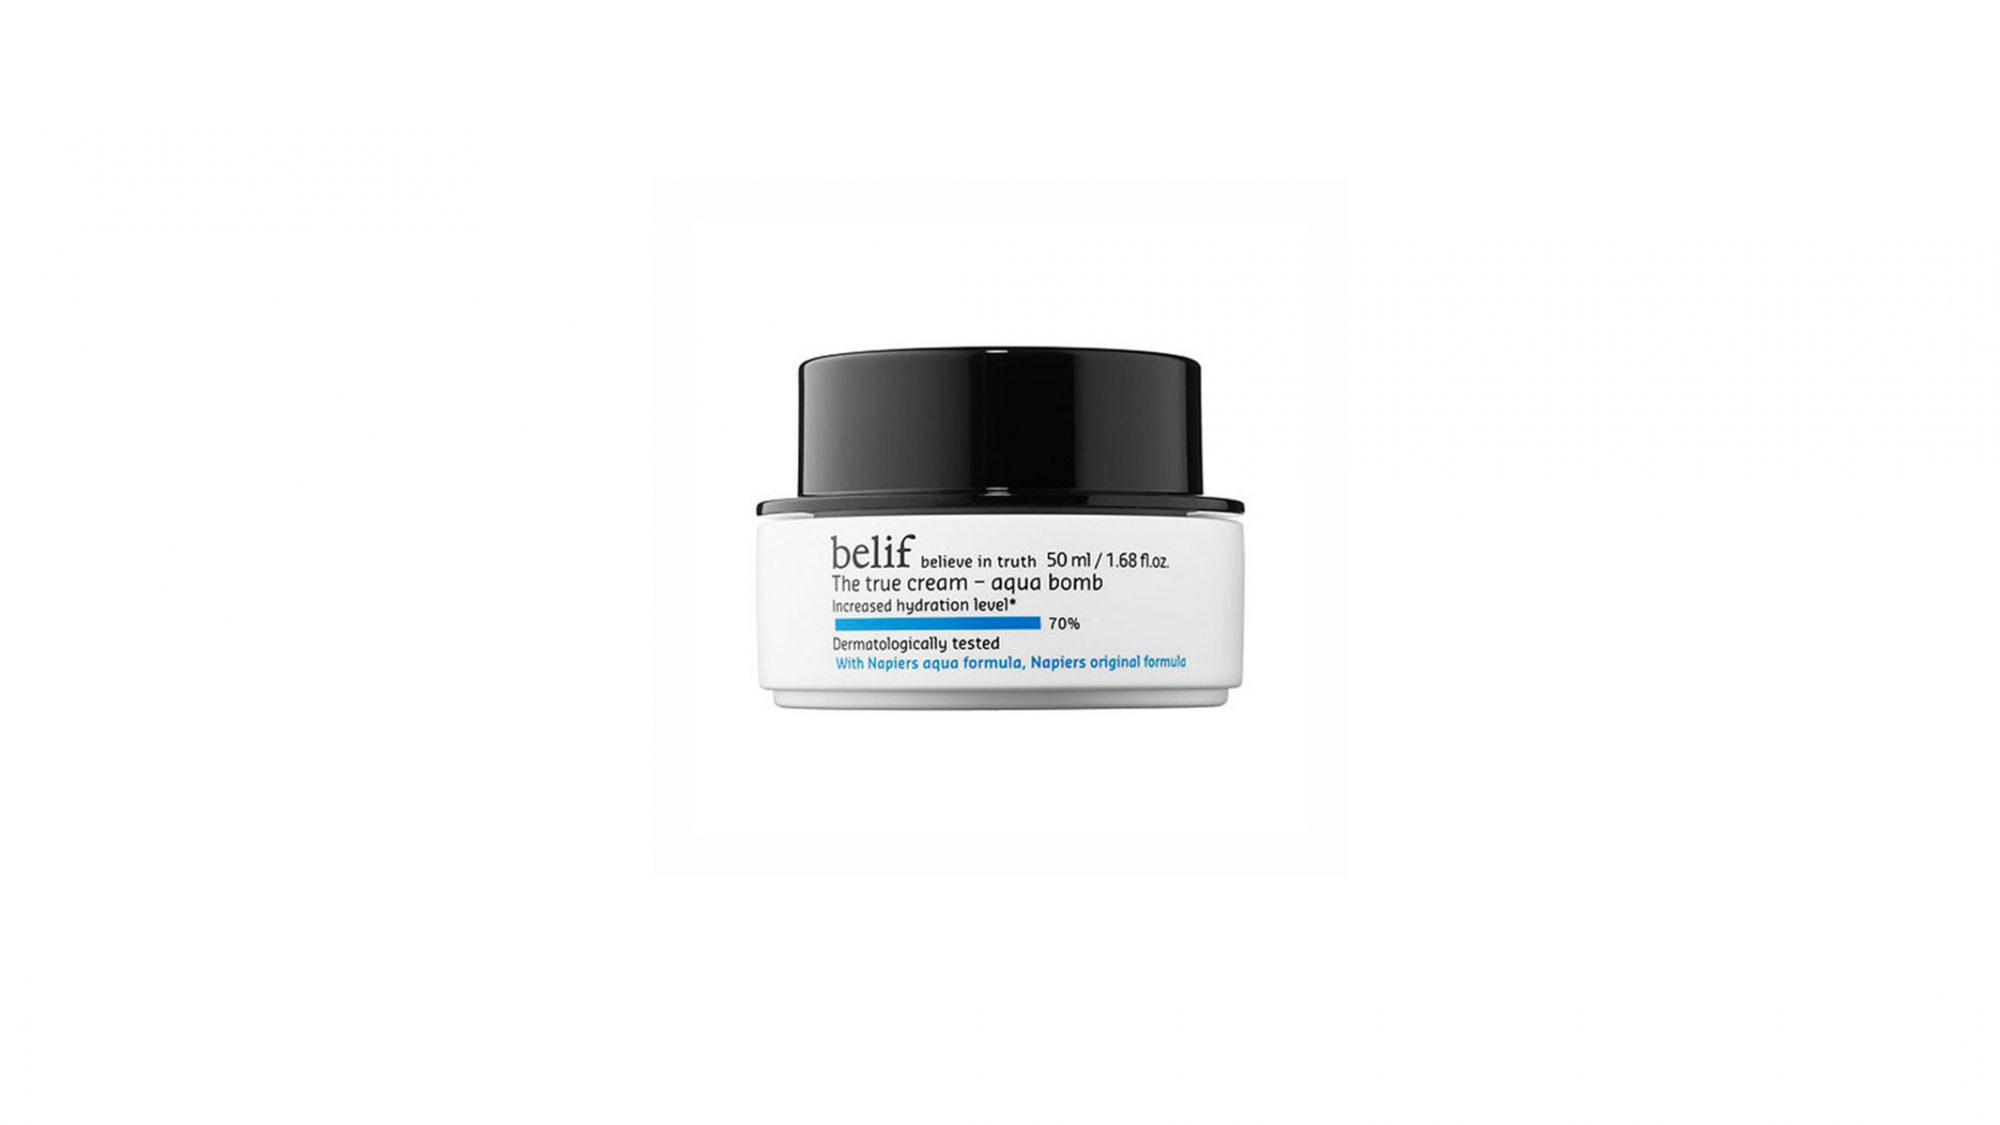 The Best Moisturizers for Every Skin Type